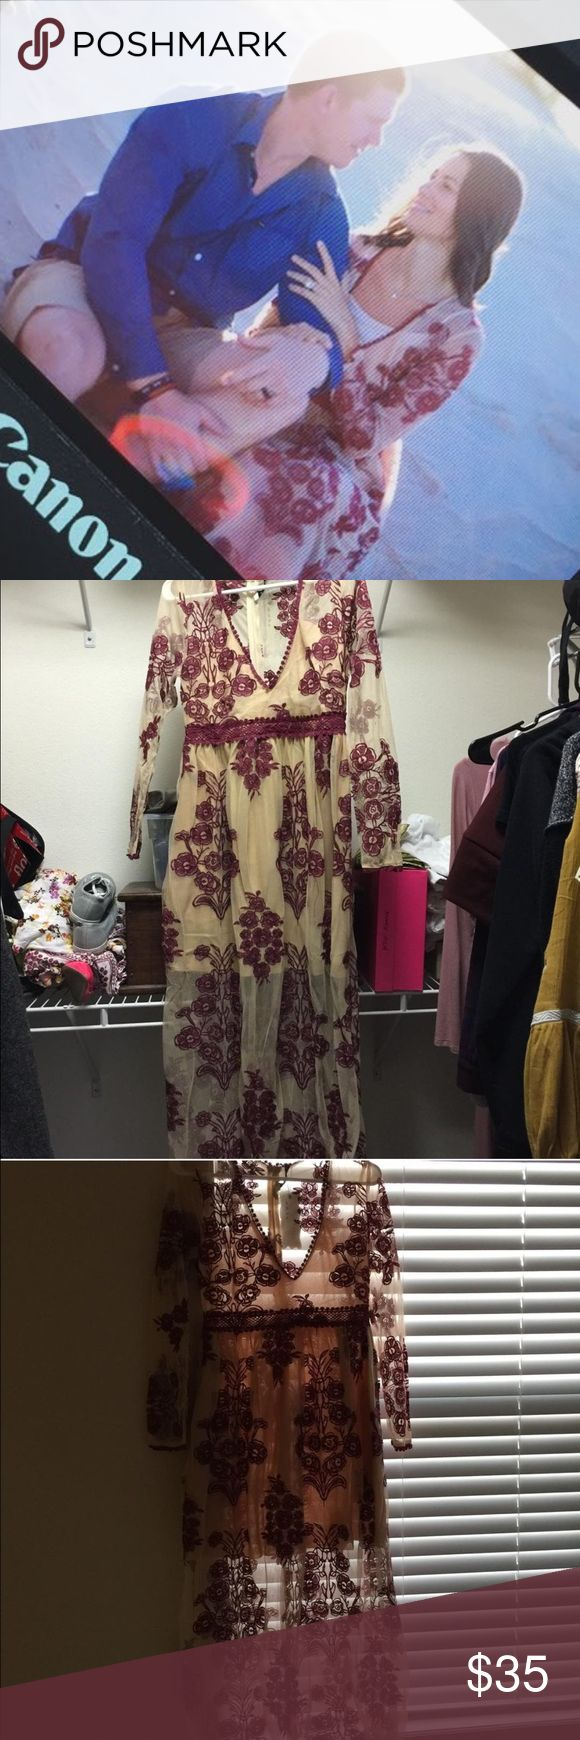 Long dress, mesh with flower details Beautiful nude long dress. Has maroon detailed flowers. Worn 1x for photo shoot. Size L. Still had tags on it. Dresses Maxi